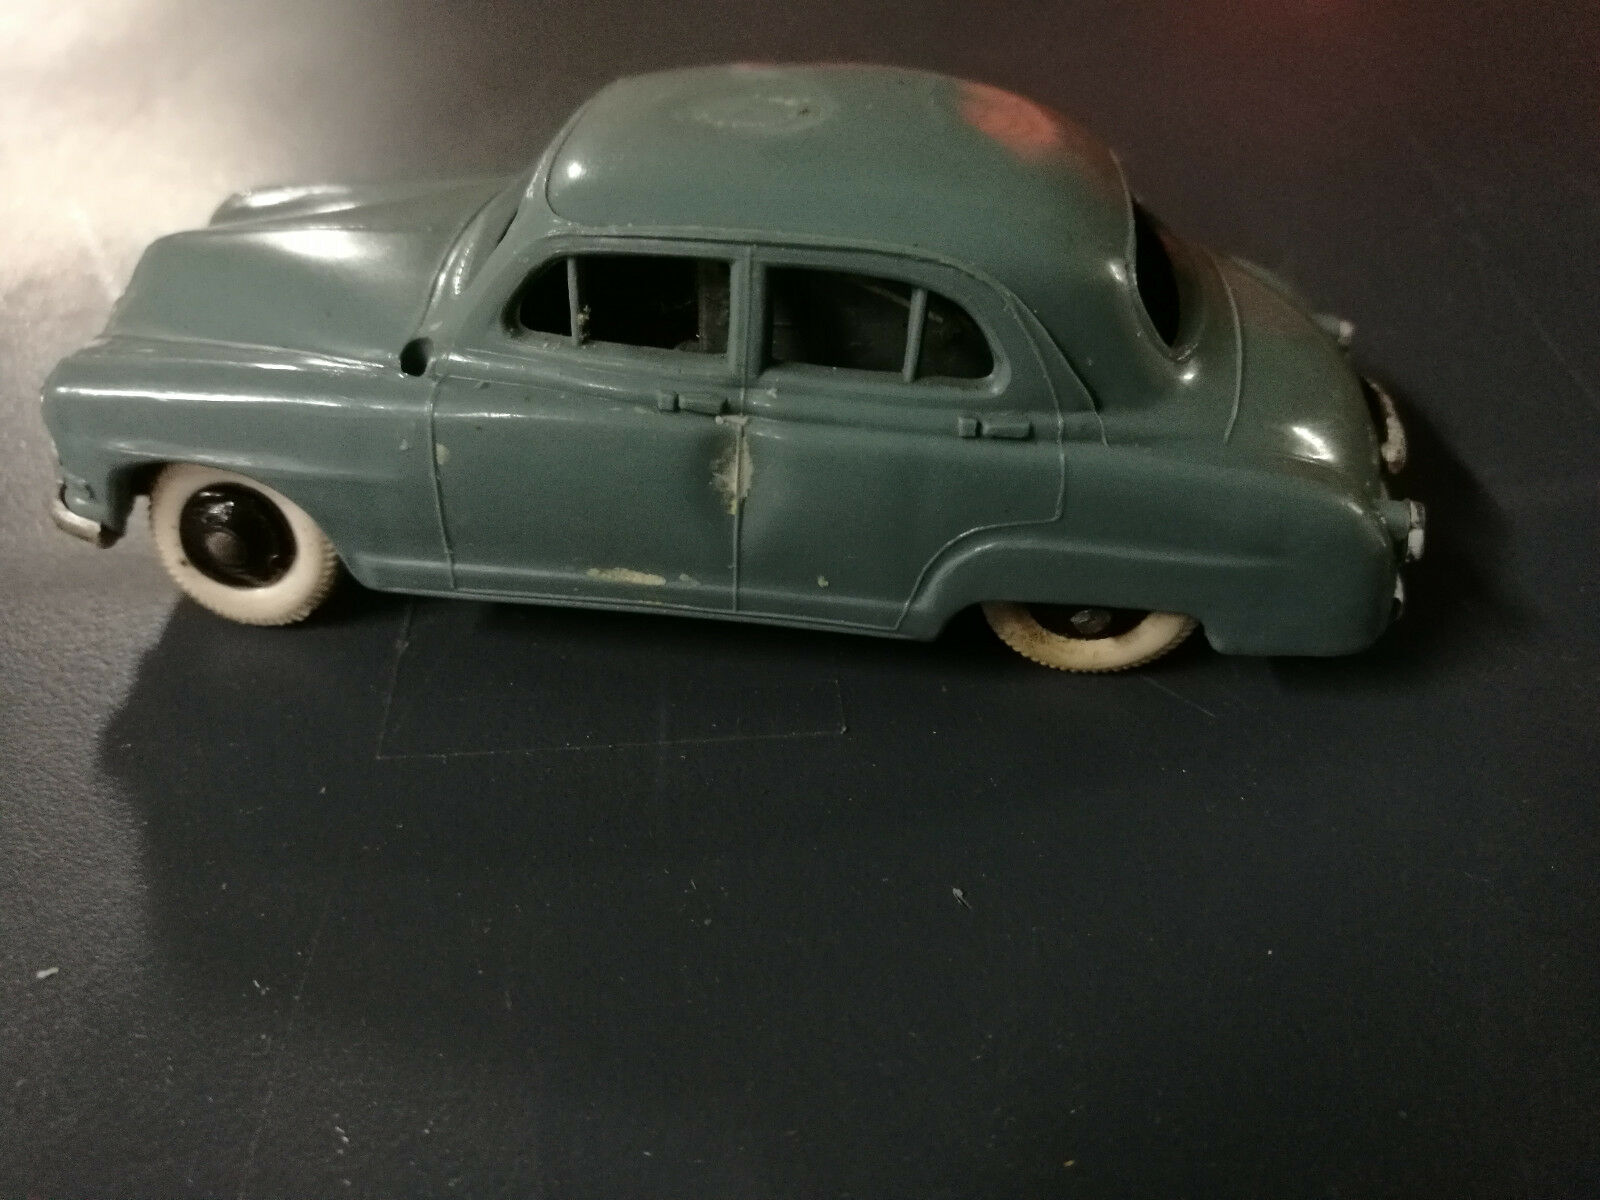 The miniature rare norev simca dove has friction